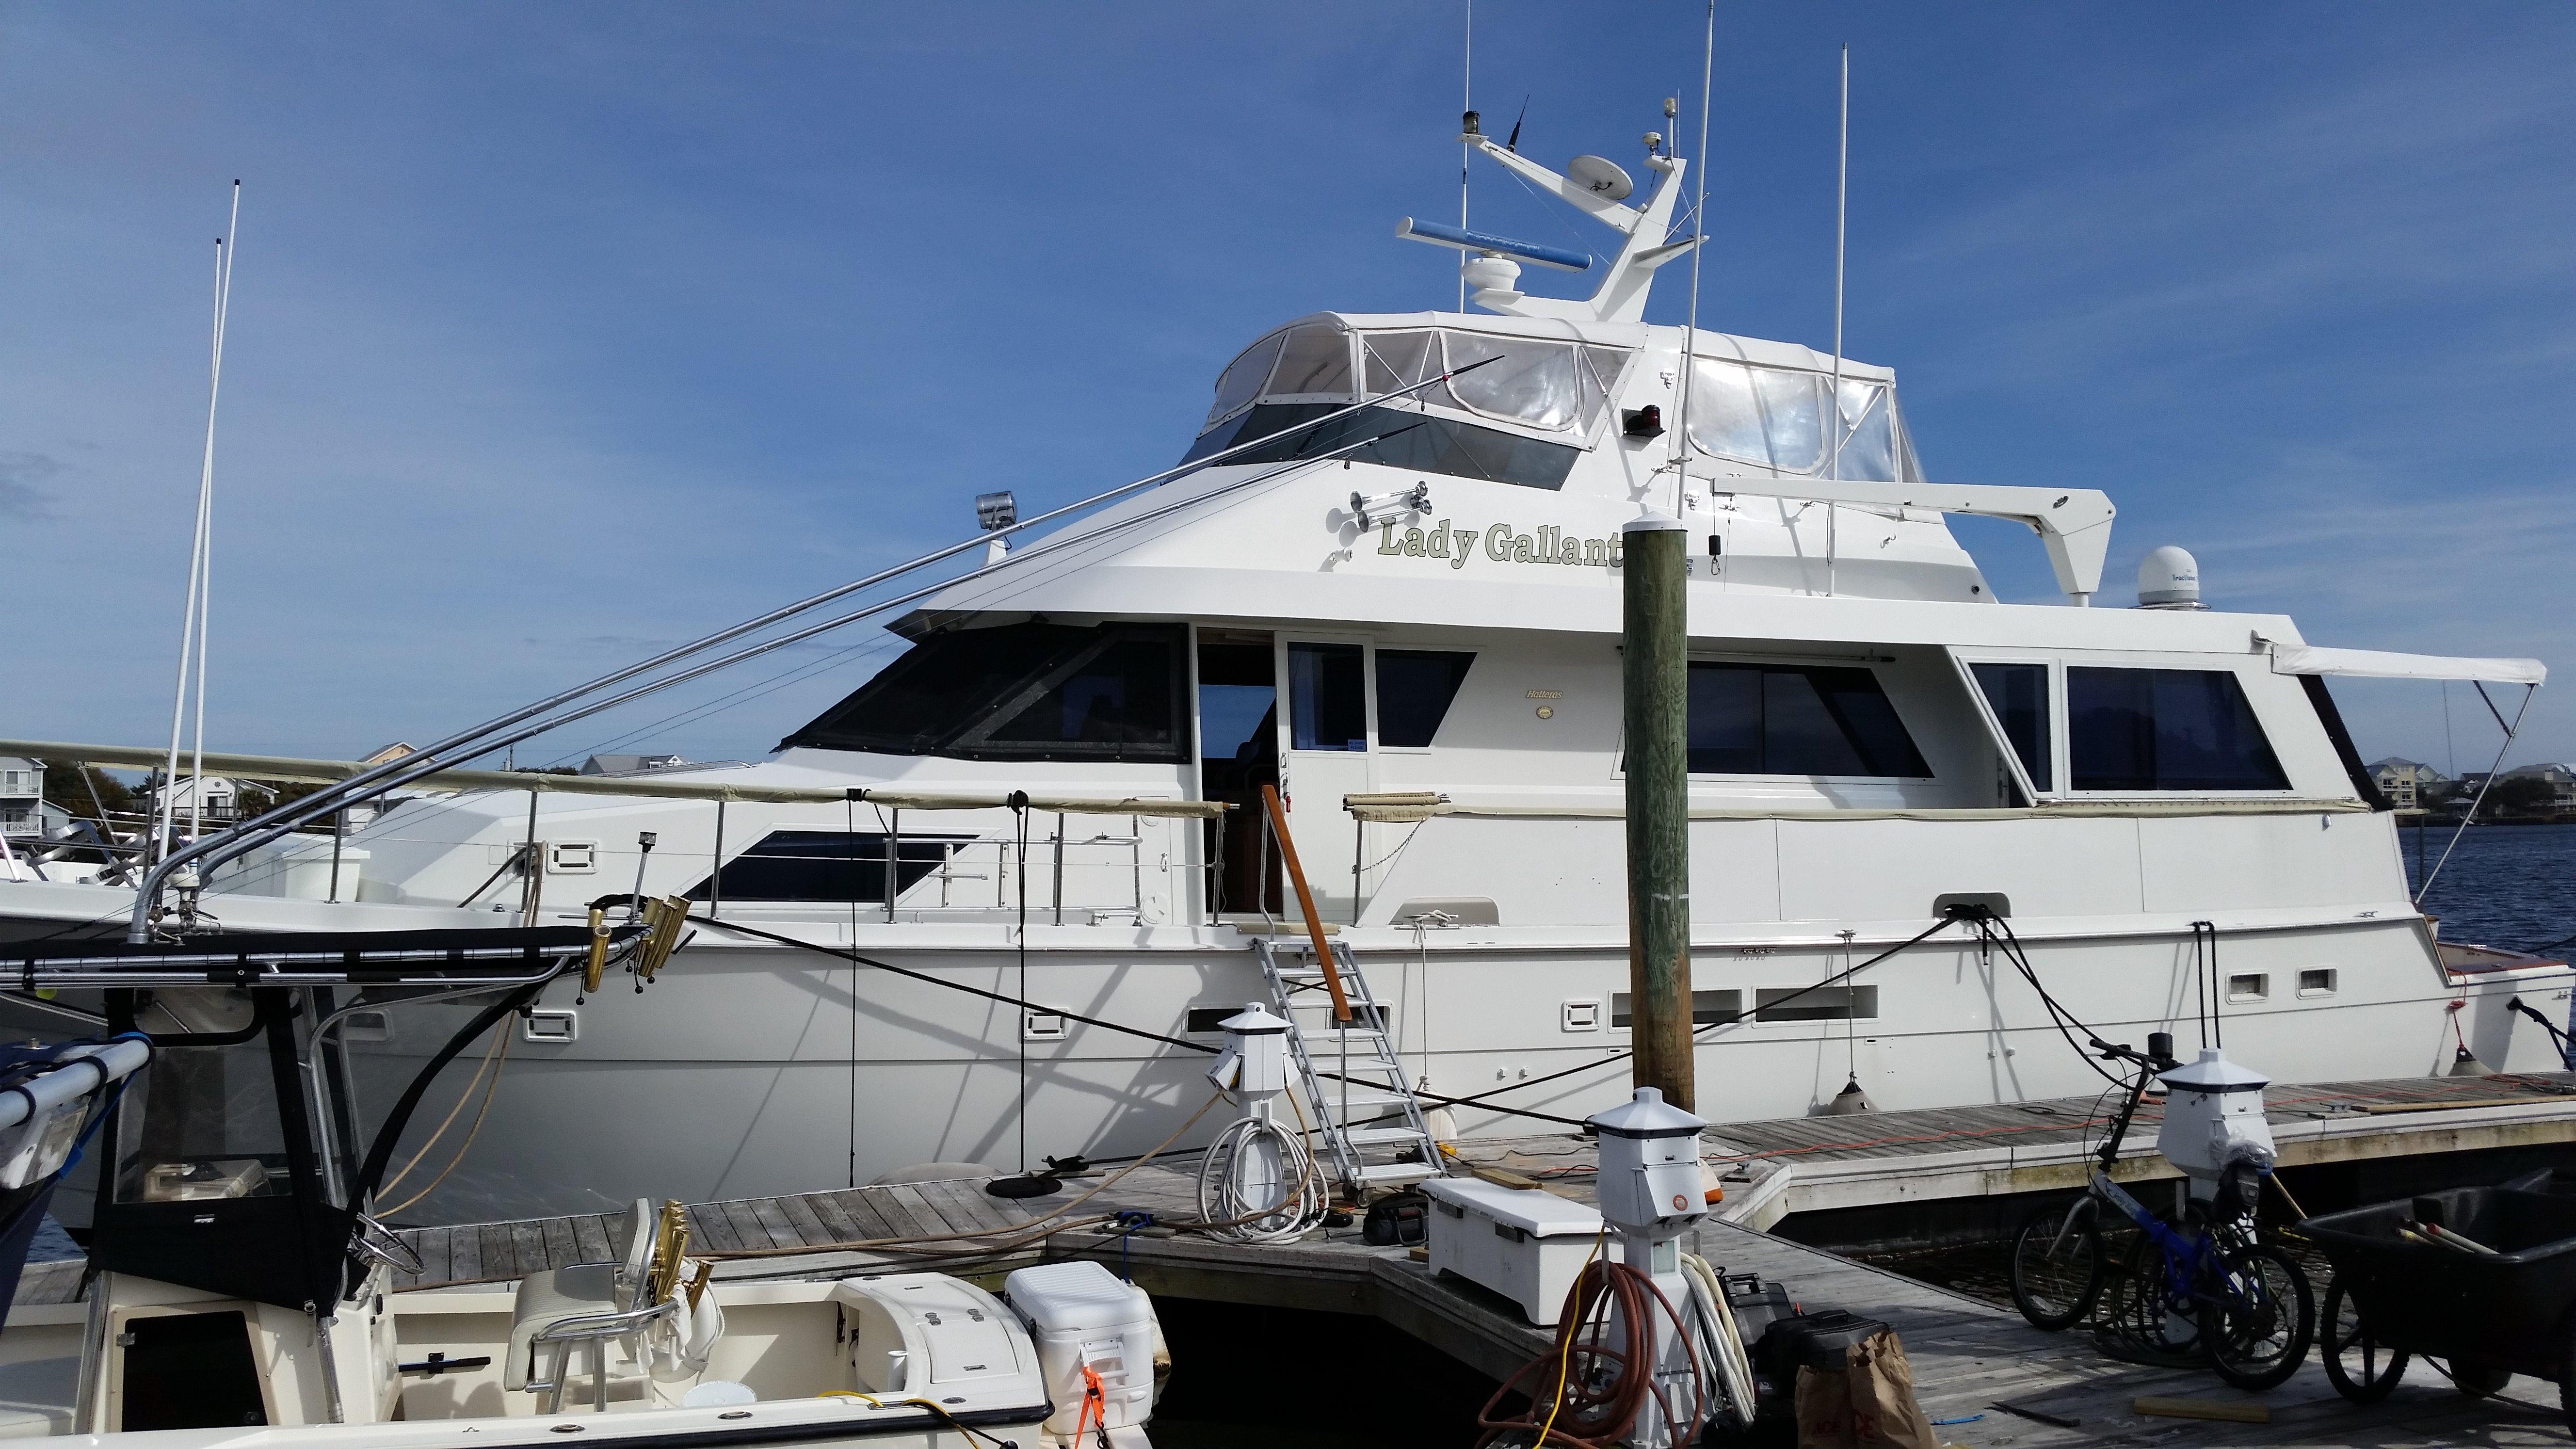 Motor yacht boat listings in sc for Used boat motors for sale in sc